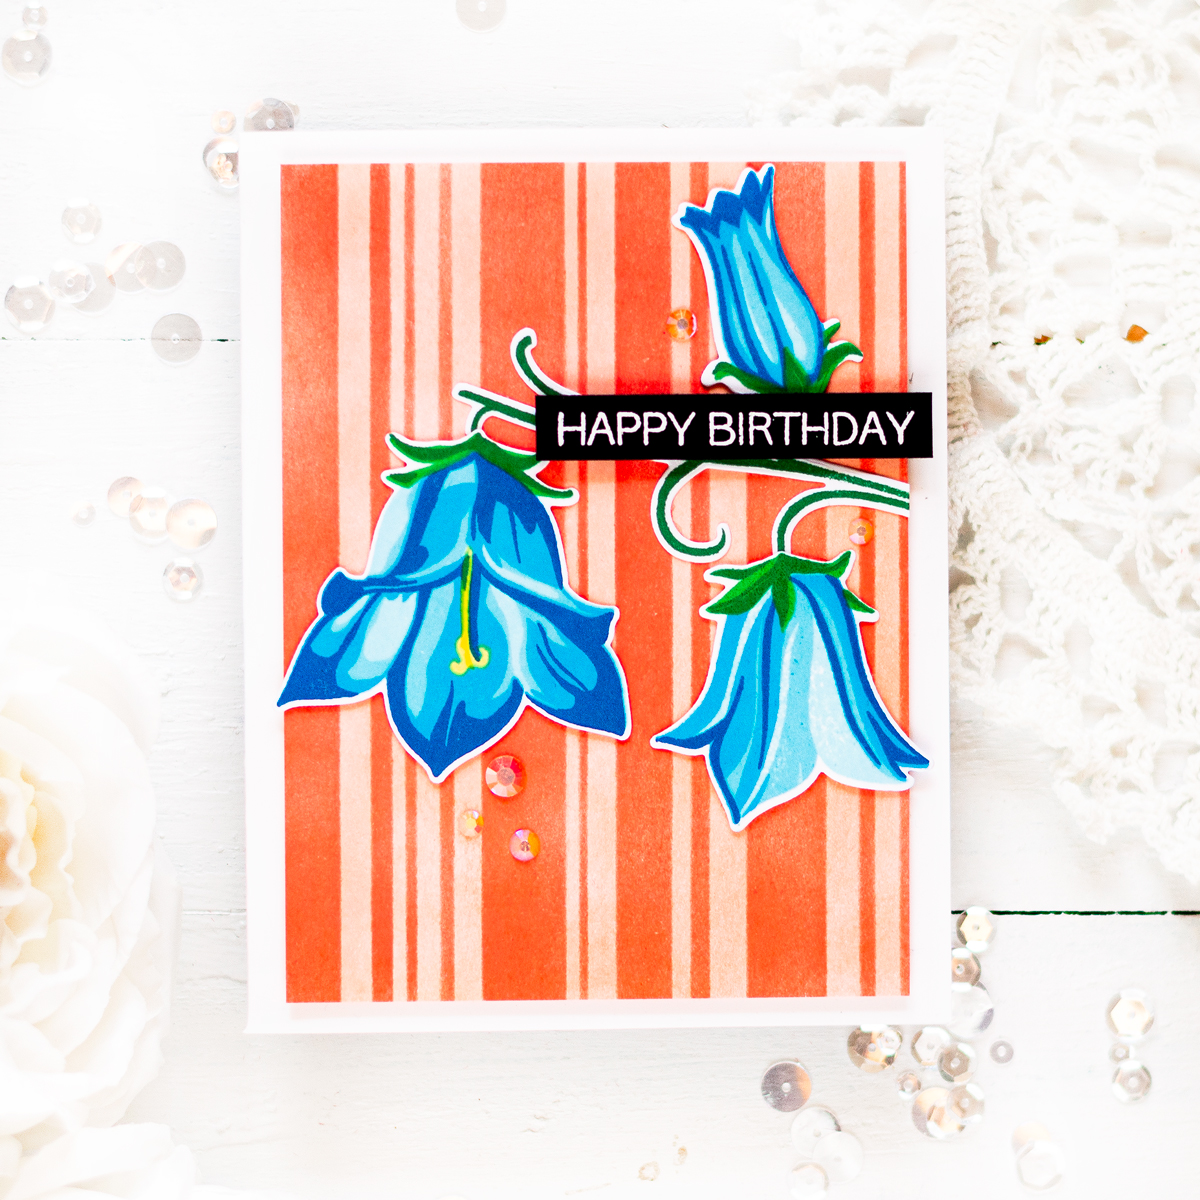 Bellflower thank you card with stripped background. Card by Svitlana Shayevich